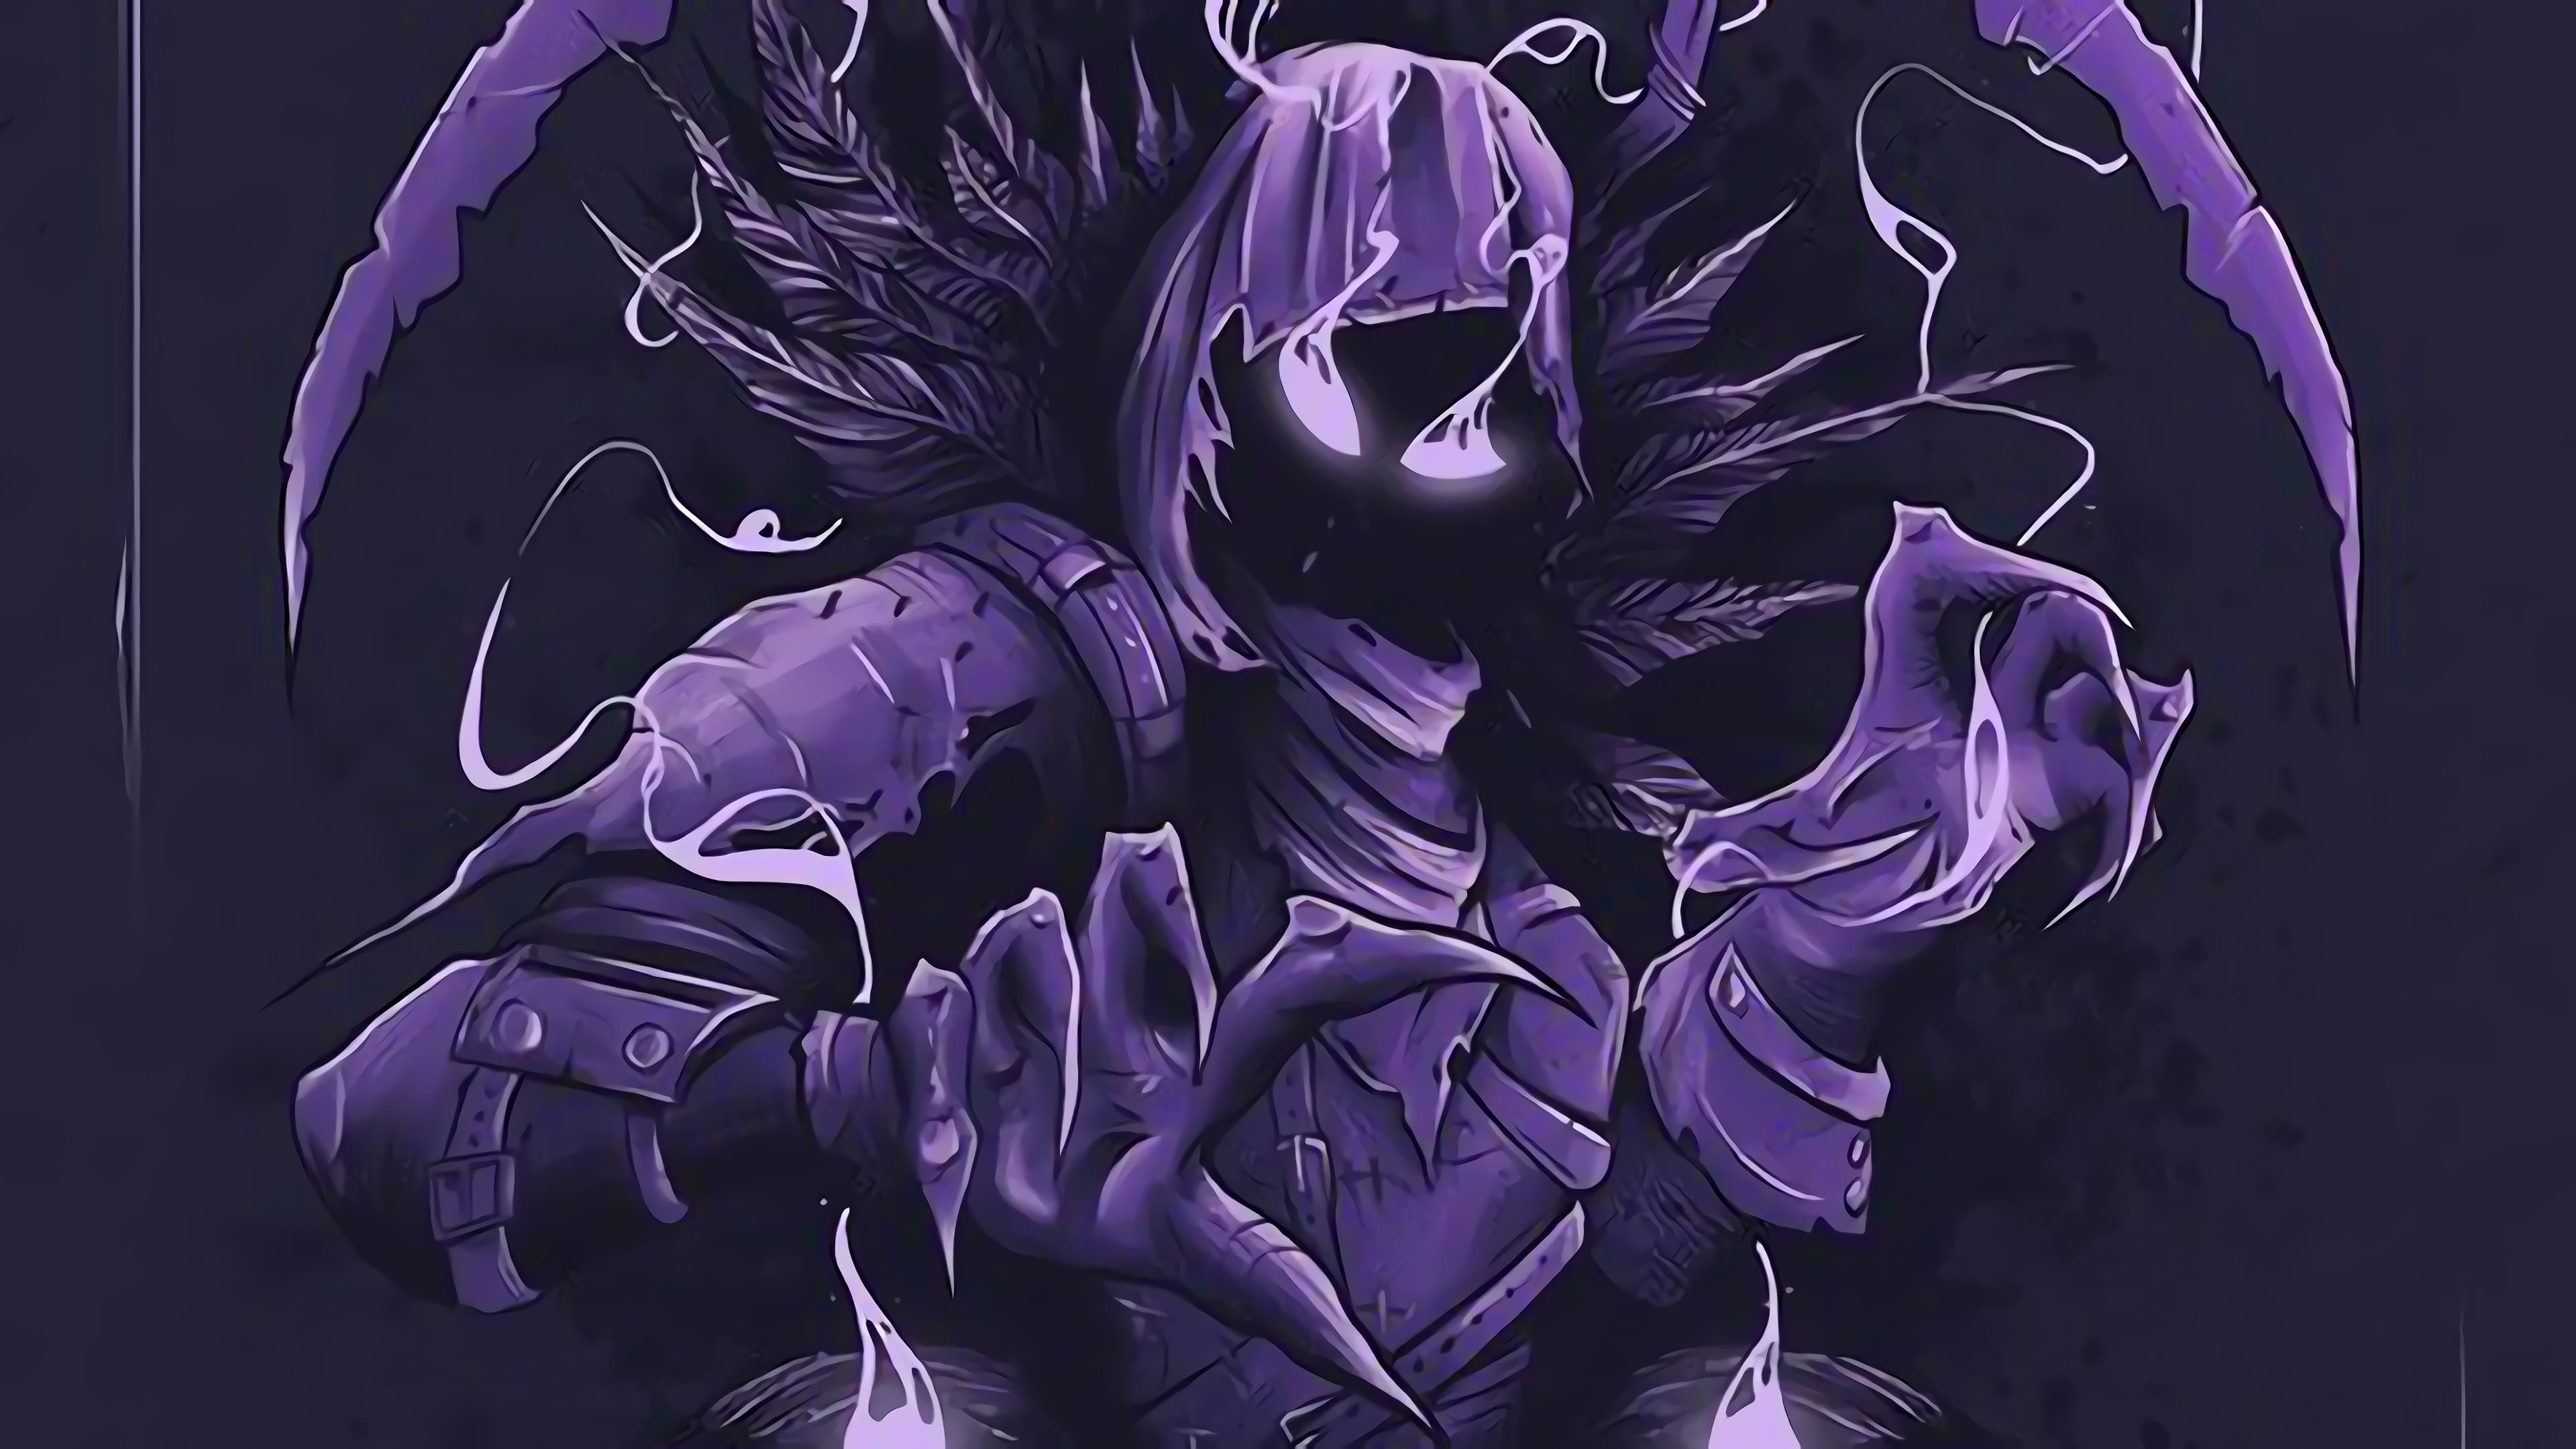 Fortnite 4K Wallpaper Battle Royale Raven Art 4079 Wallpapers and 3840x2160